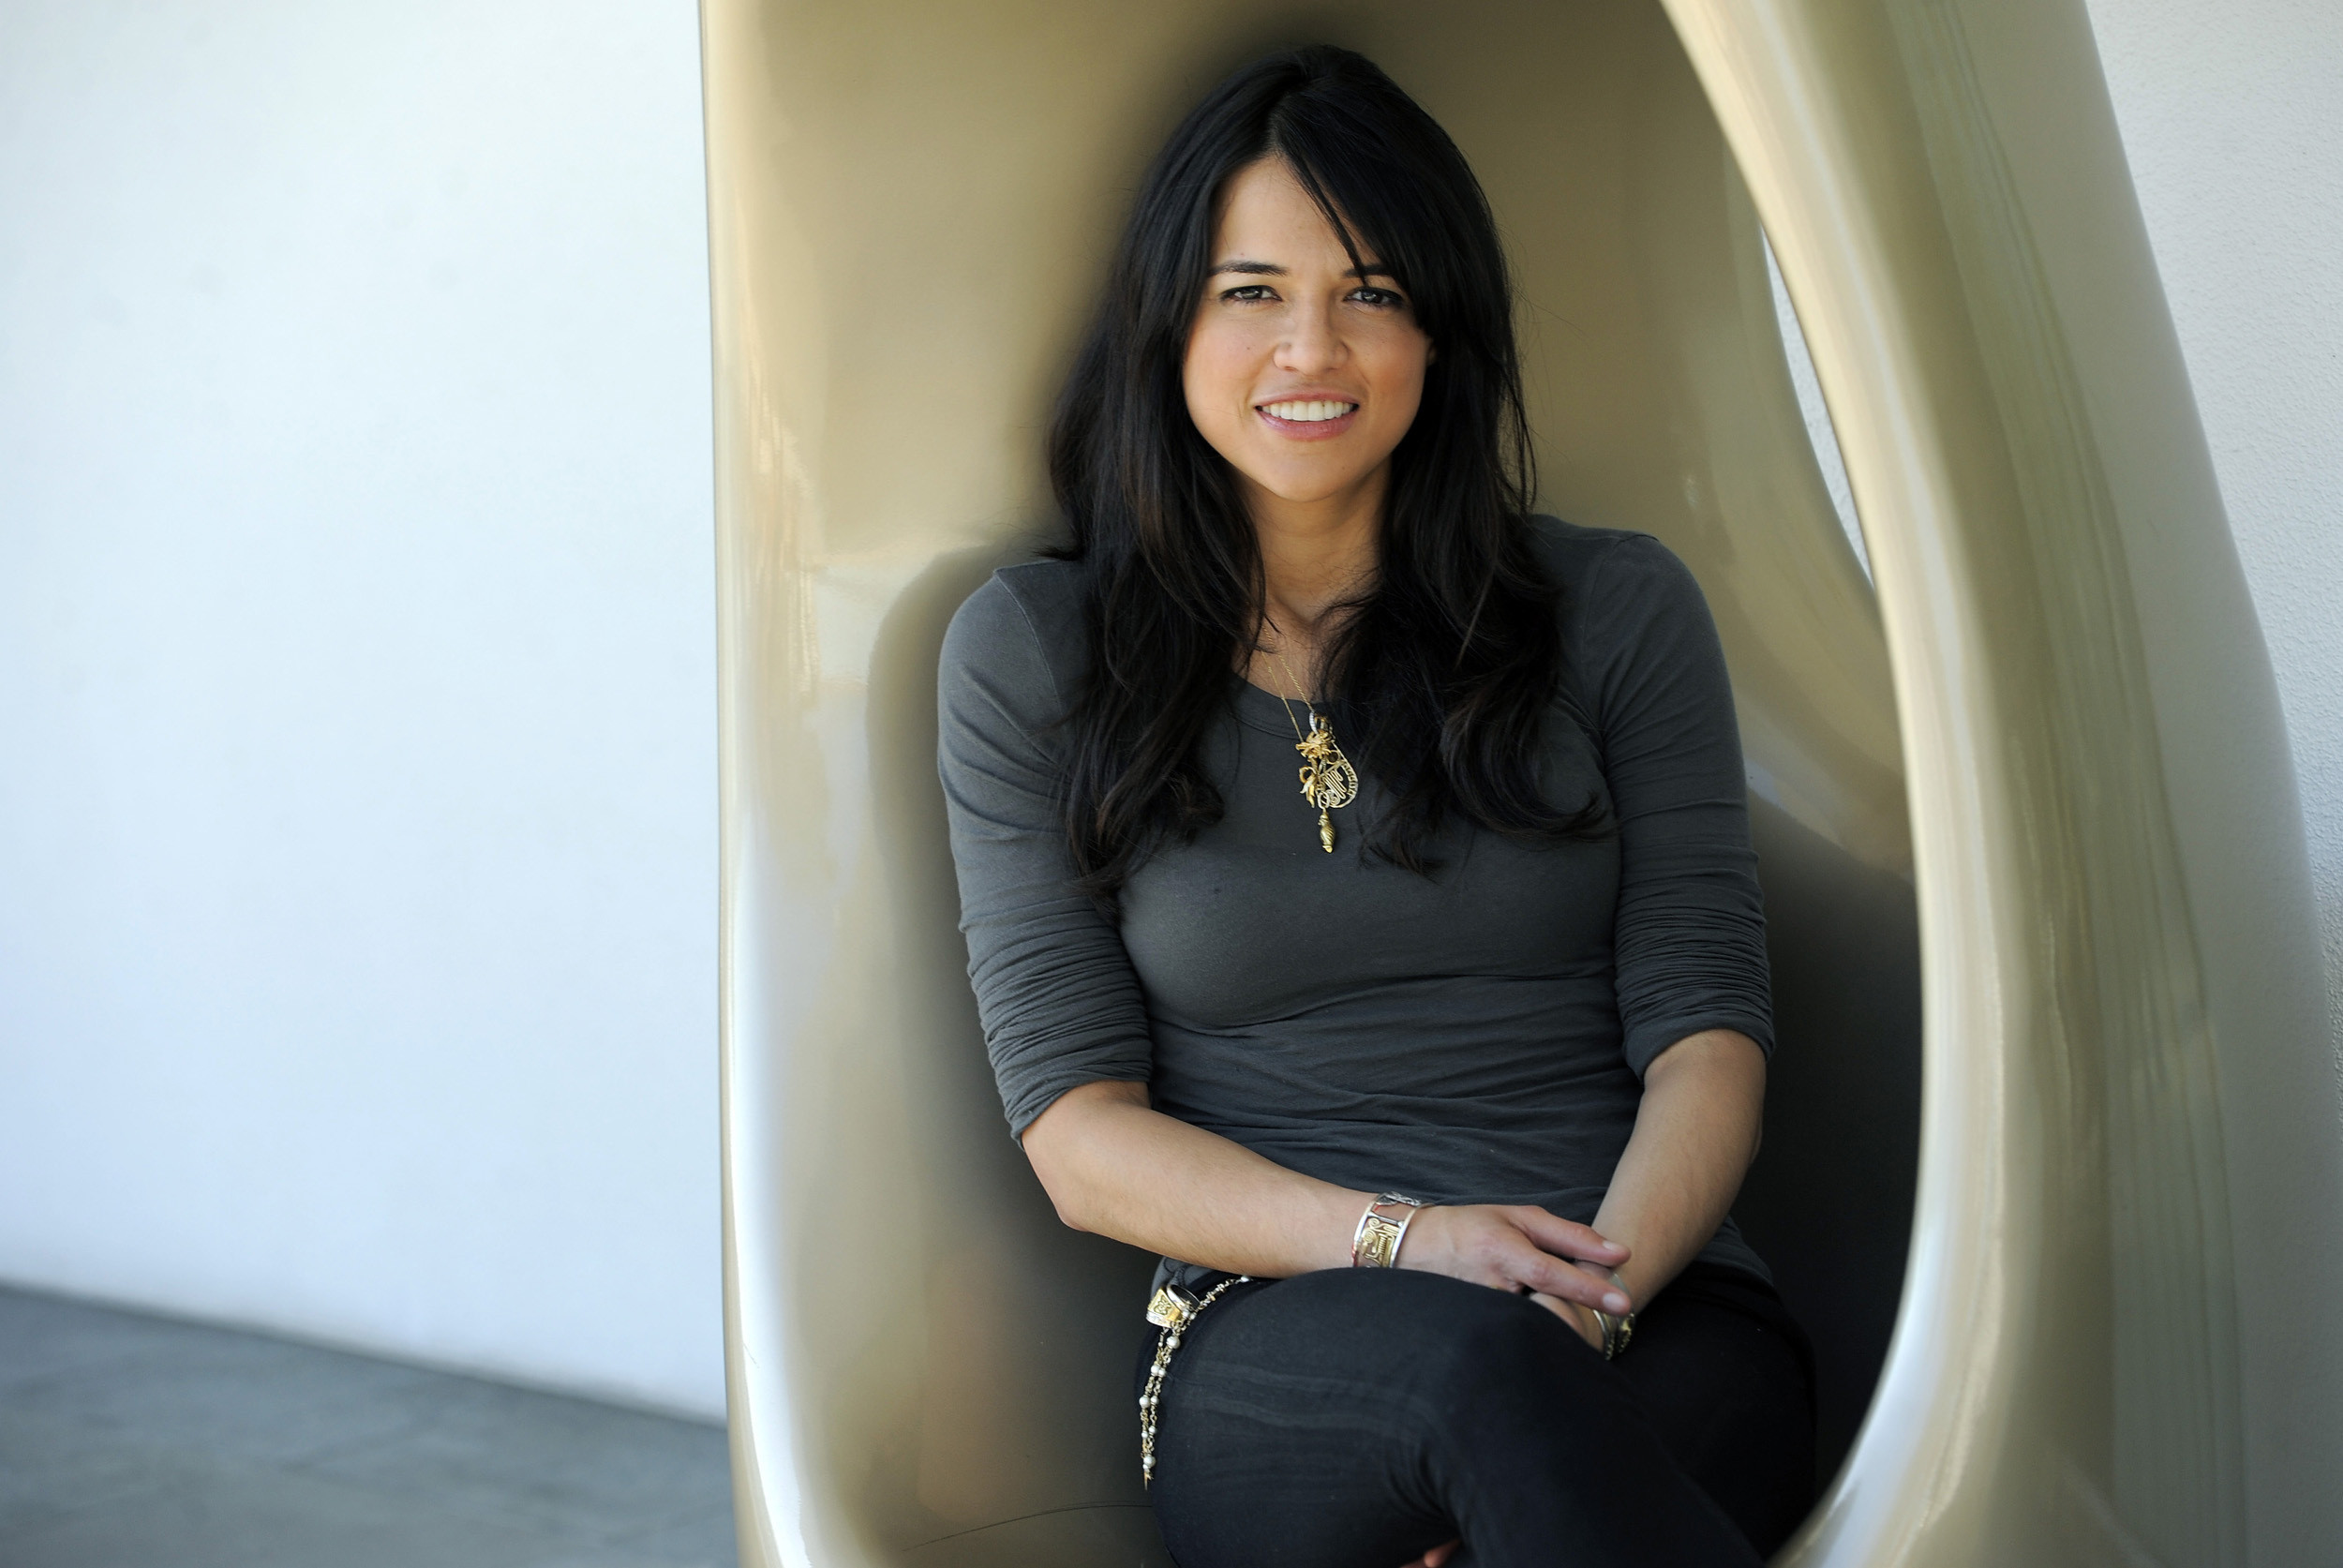 HD Wallpaper and background photos of Michelle Rodriguez Wallpaper for fans  of Michelle Rodriguez images.